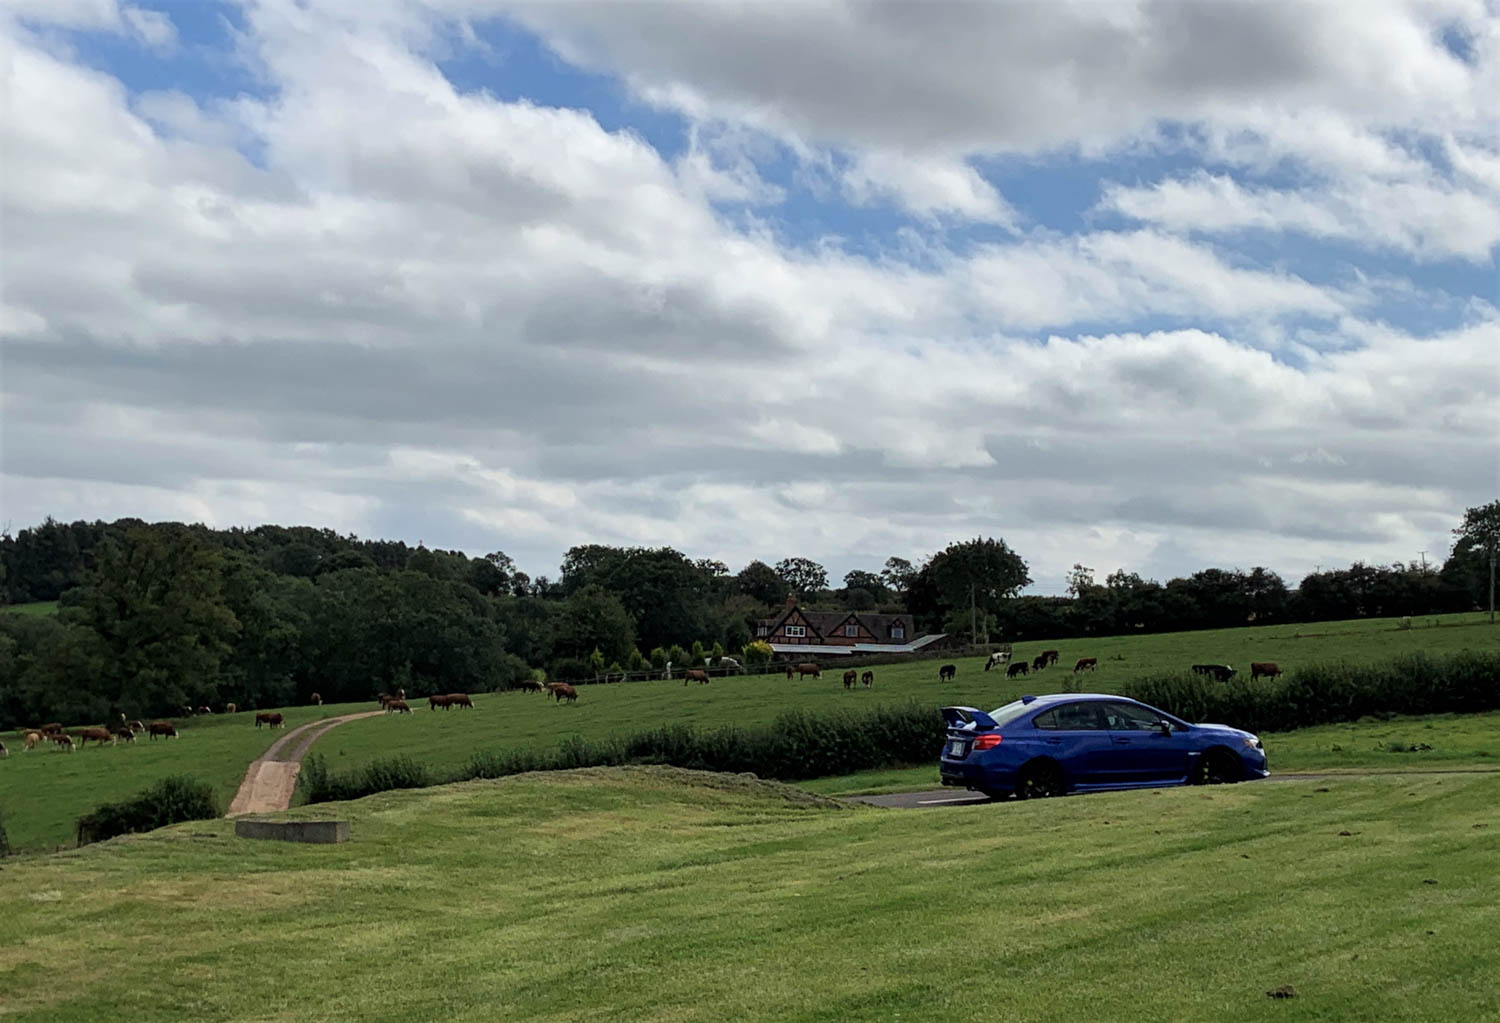 Simon and Charlotte Durling's home is at the top of Shelsley Walsh, just beyond the turnout.